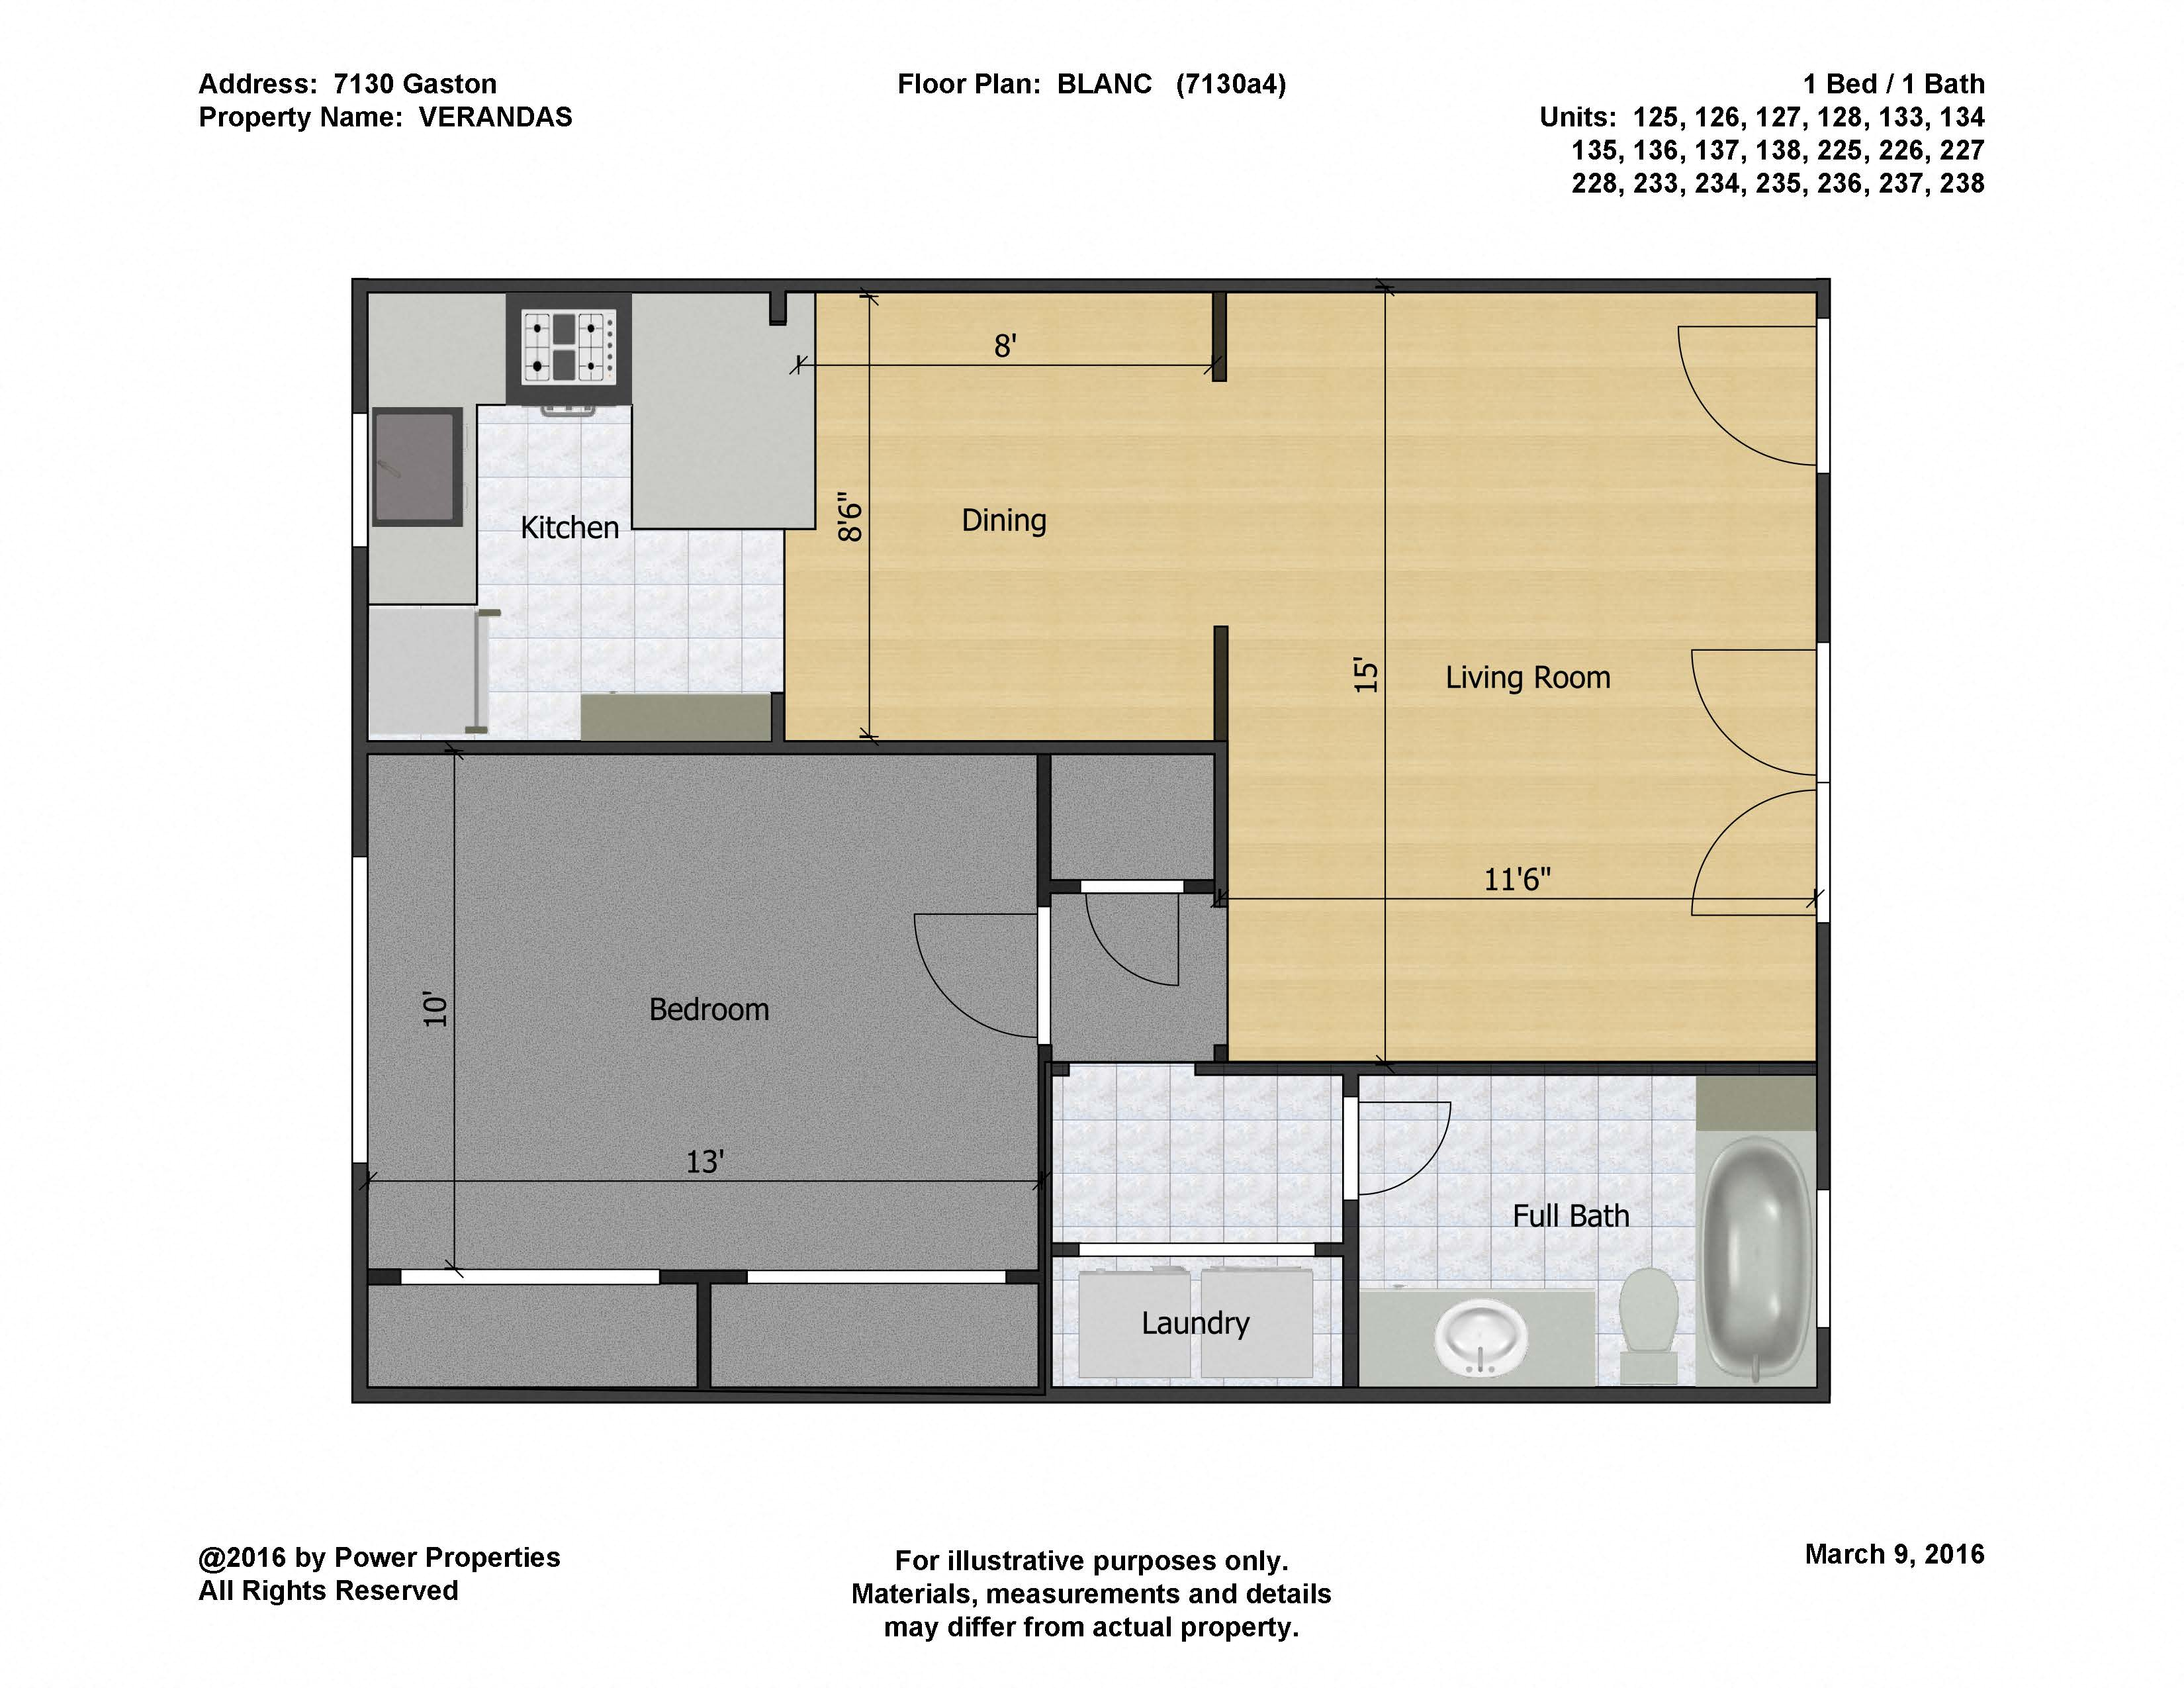 7130 Gaston VERANDAS - BLANC (1  Bed - 1 Bath)